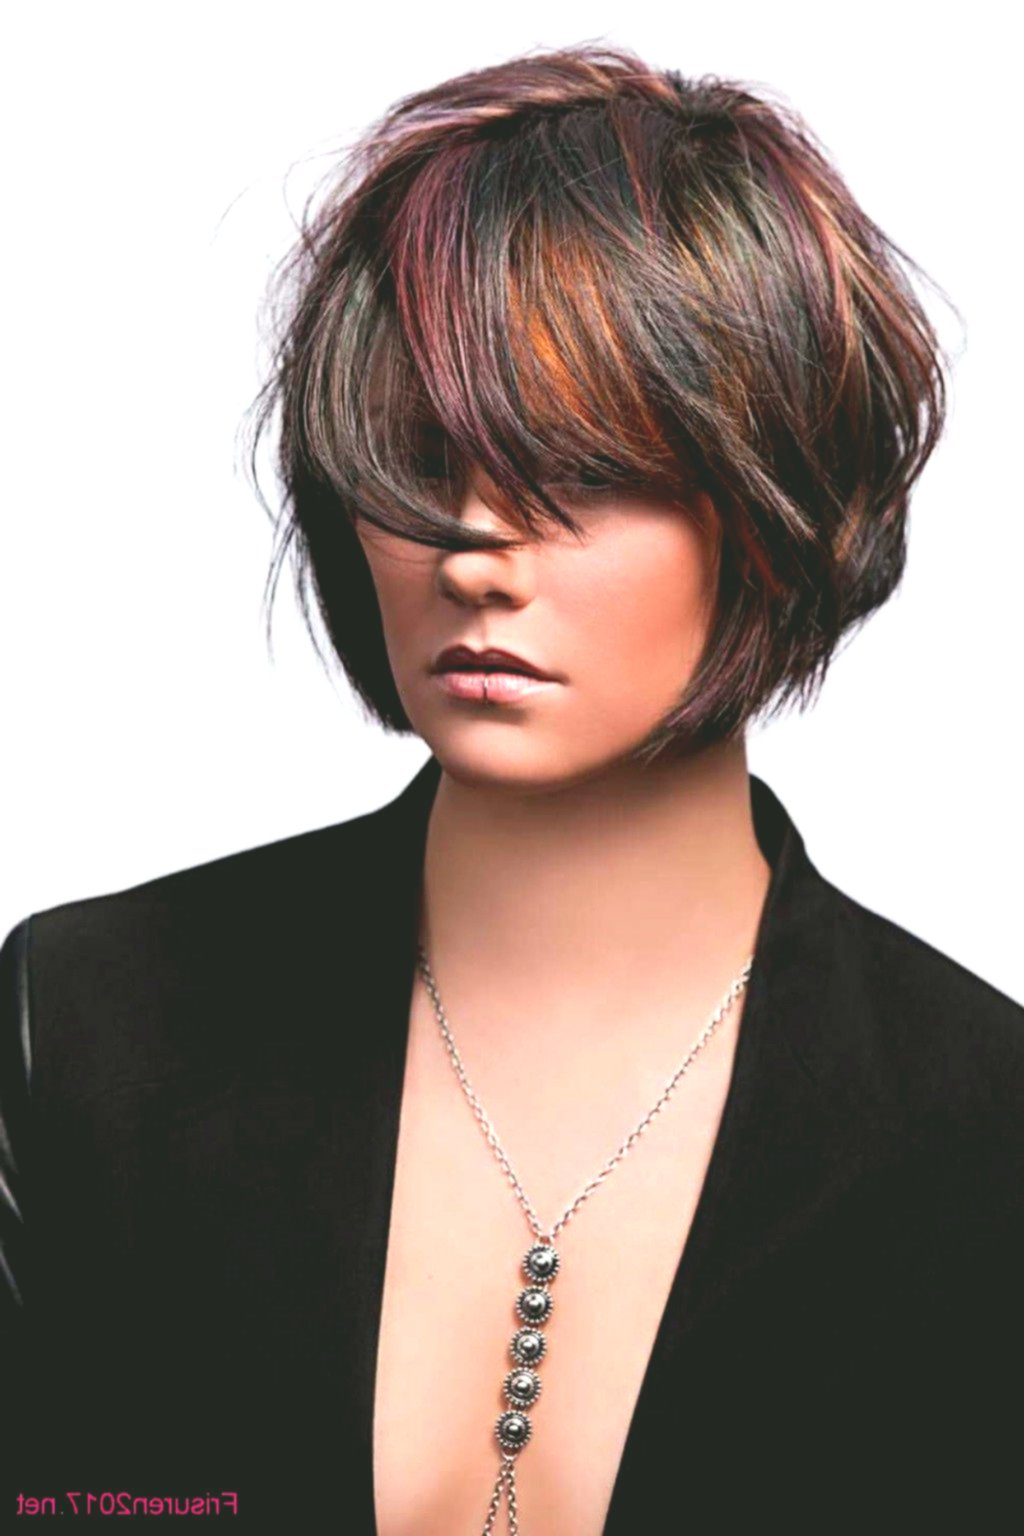 stylish fashionable hairstyles inspiration modern Fashionable hairstyles construction